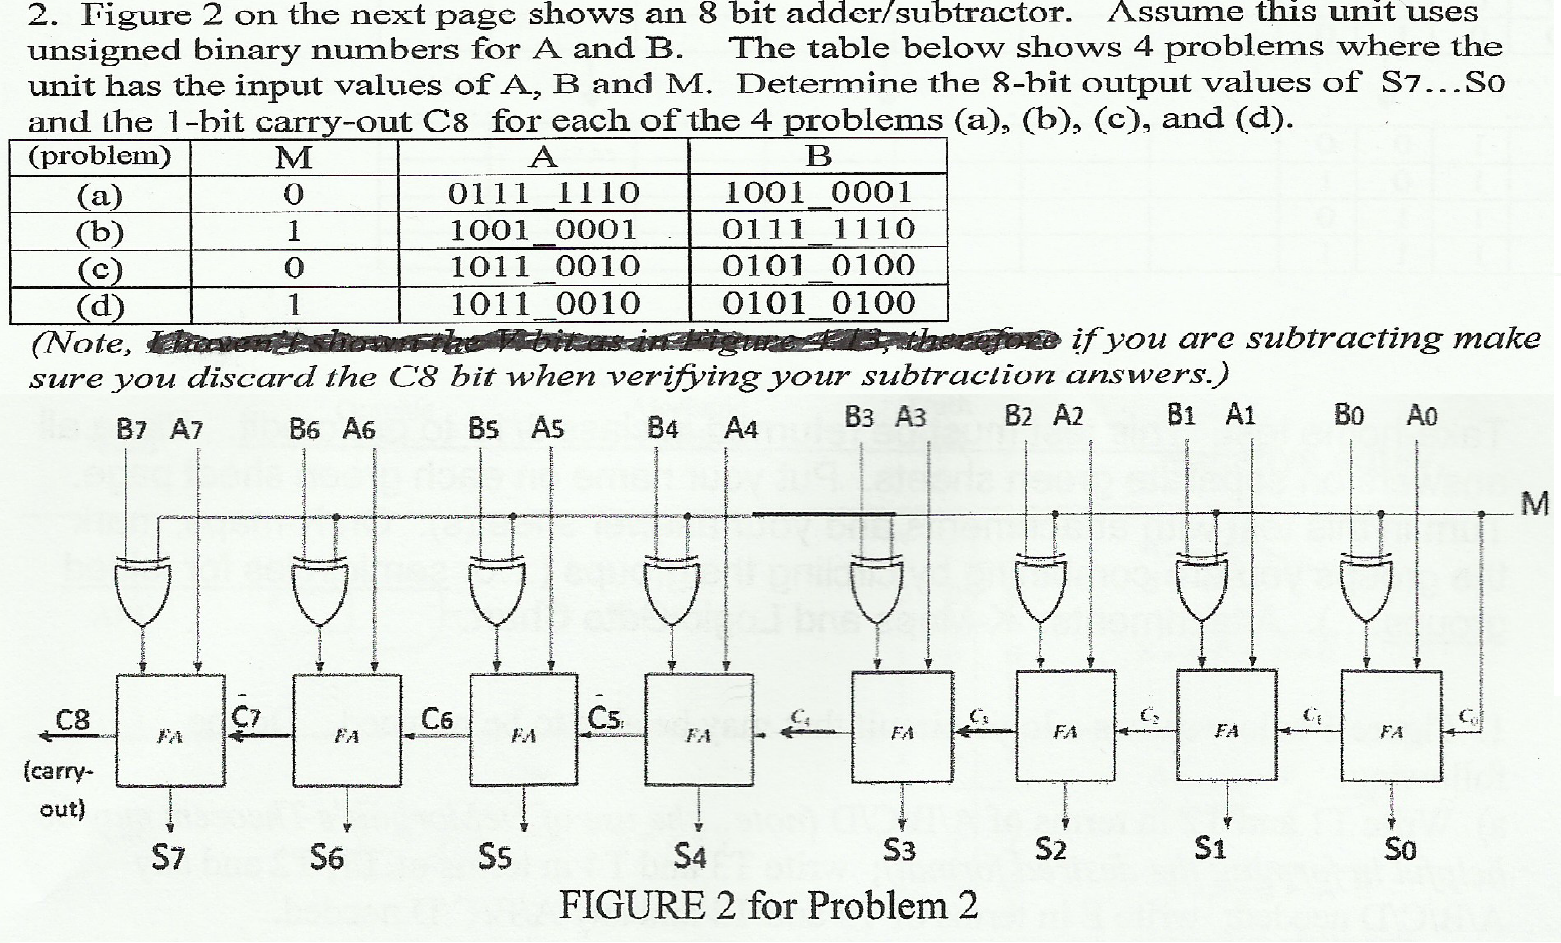 Figure 2 on the next page shows an 8 bit adder/sub